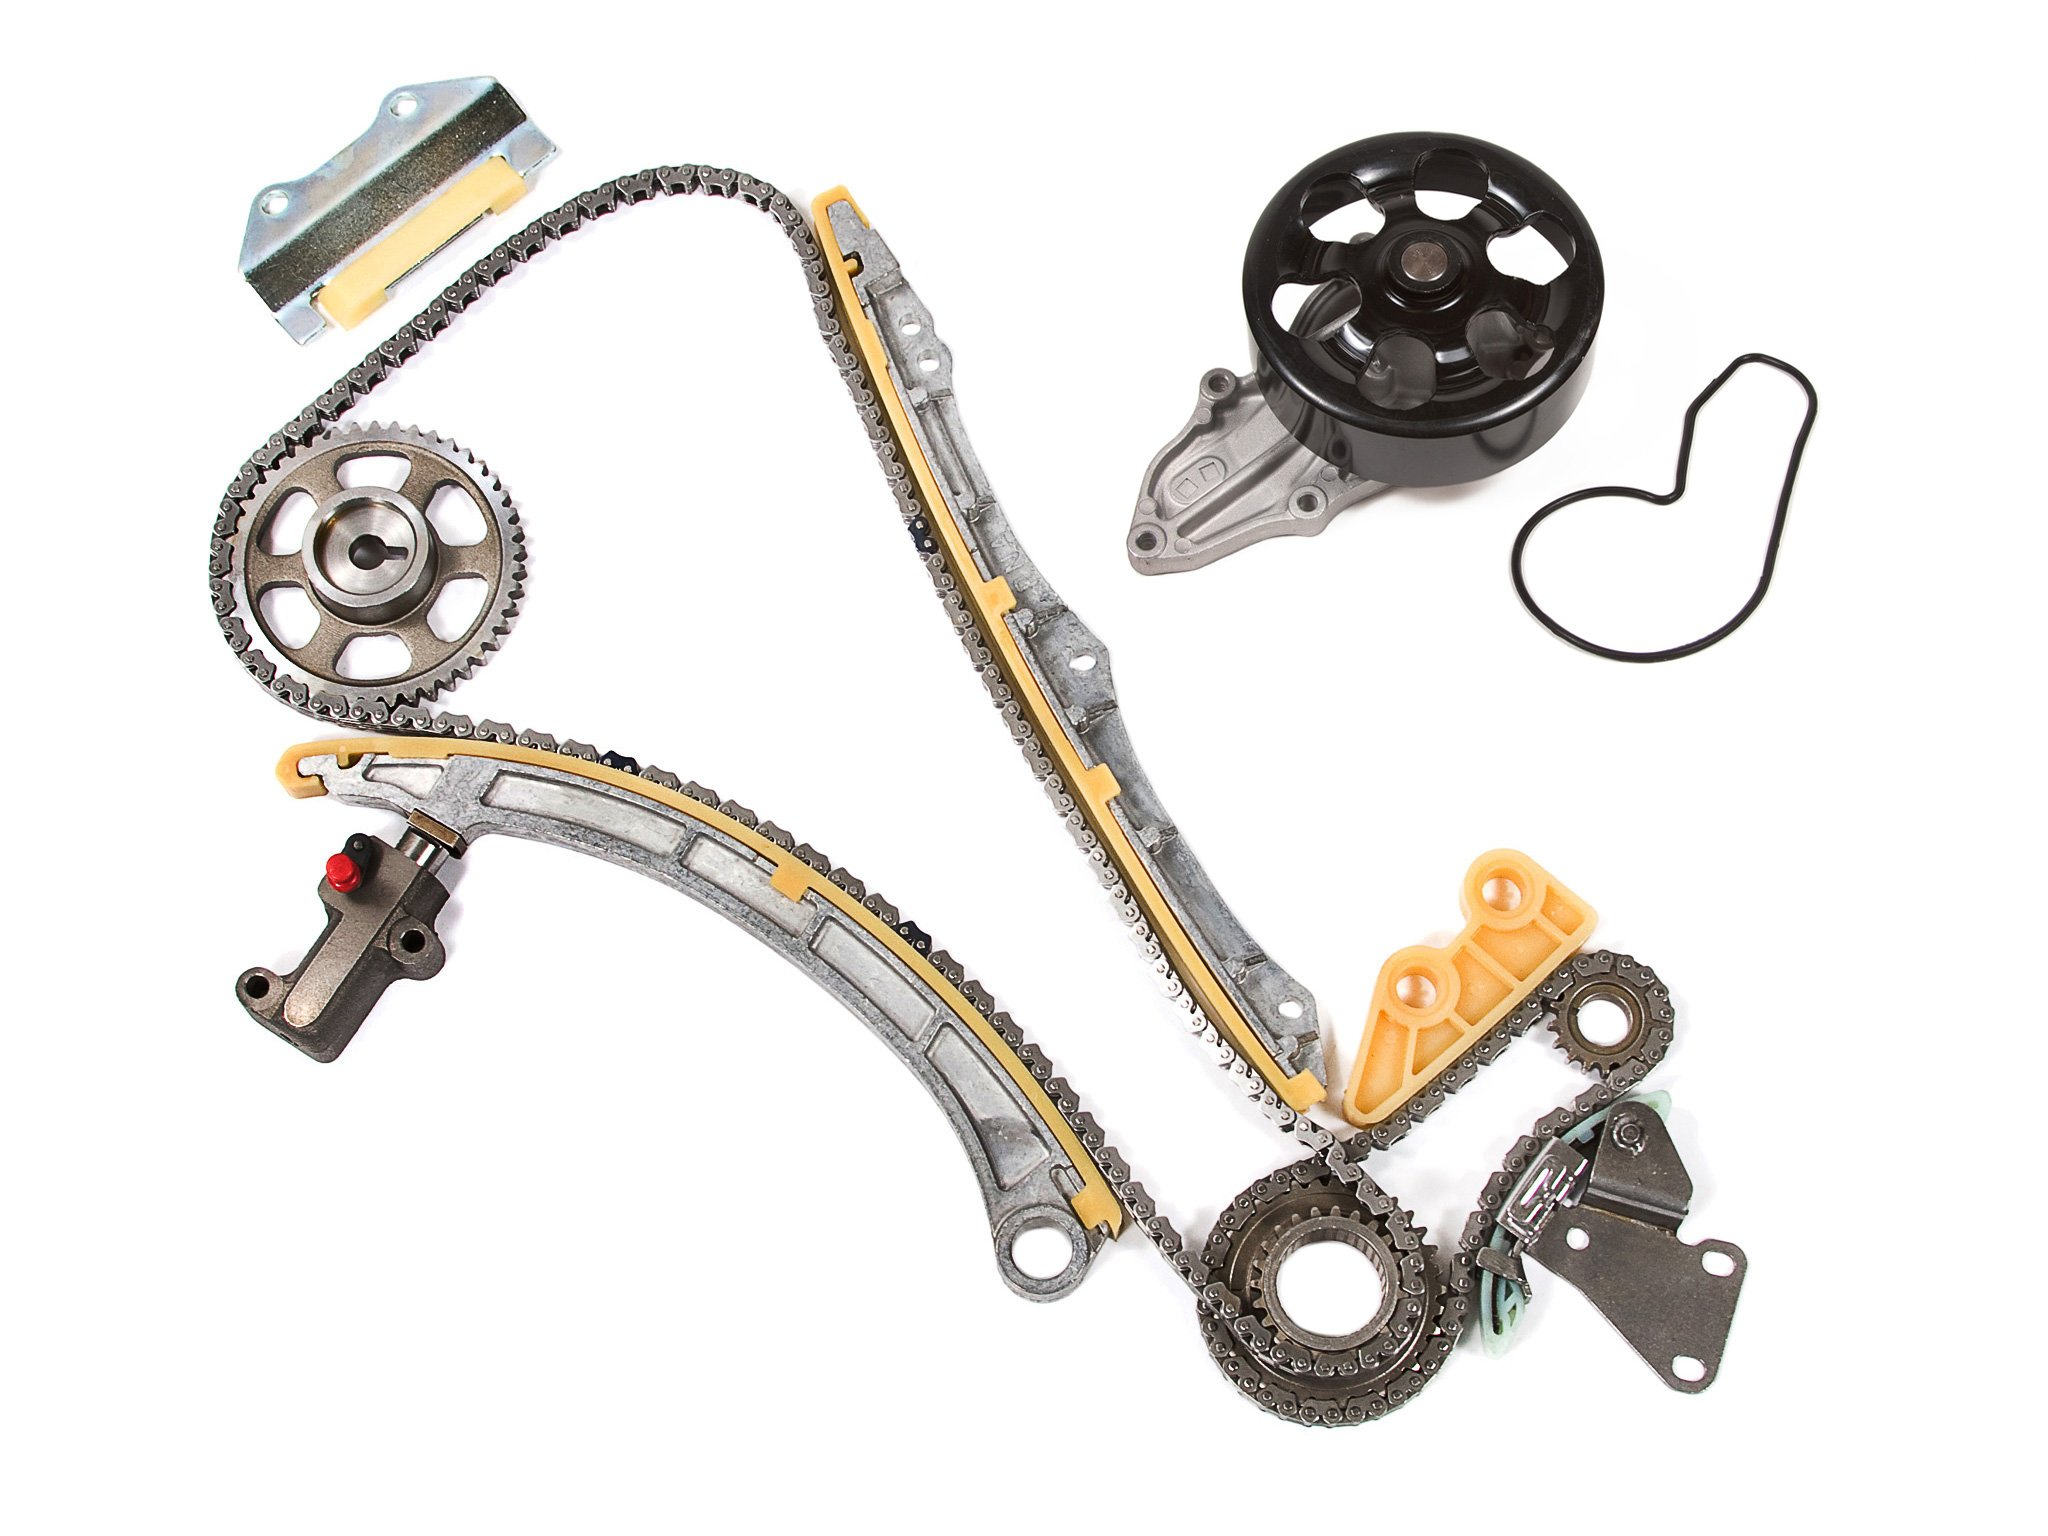 Evergreen TK4033WPT Fits Acura RSX Honda Civic 2.0L K20A3 Timing Chain Kit Water Pump (with Gears)